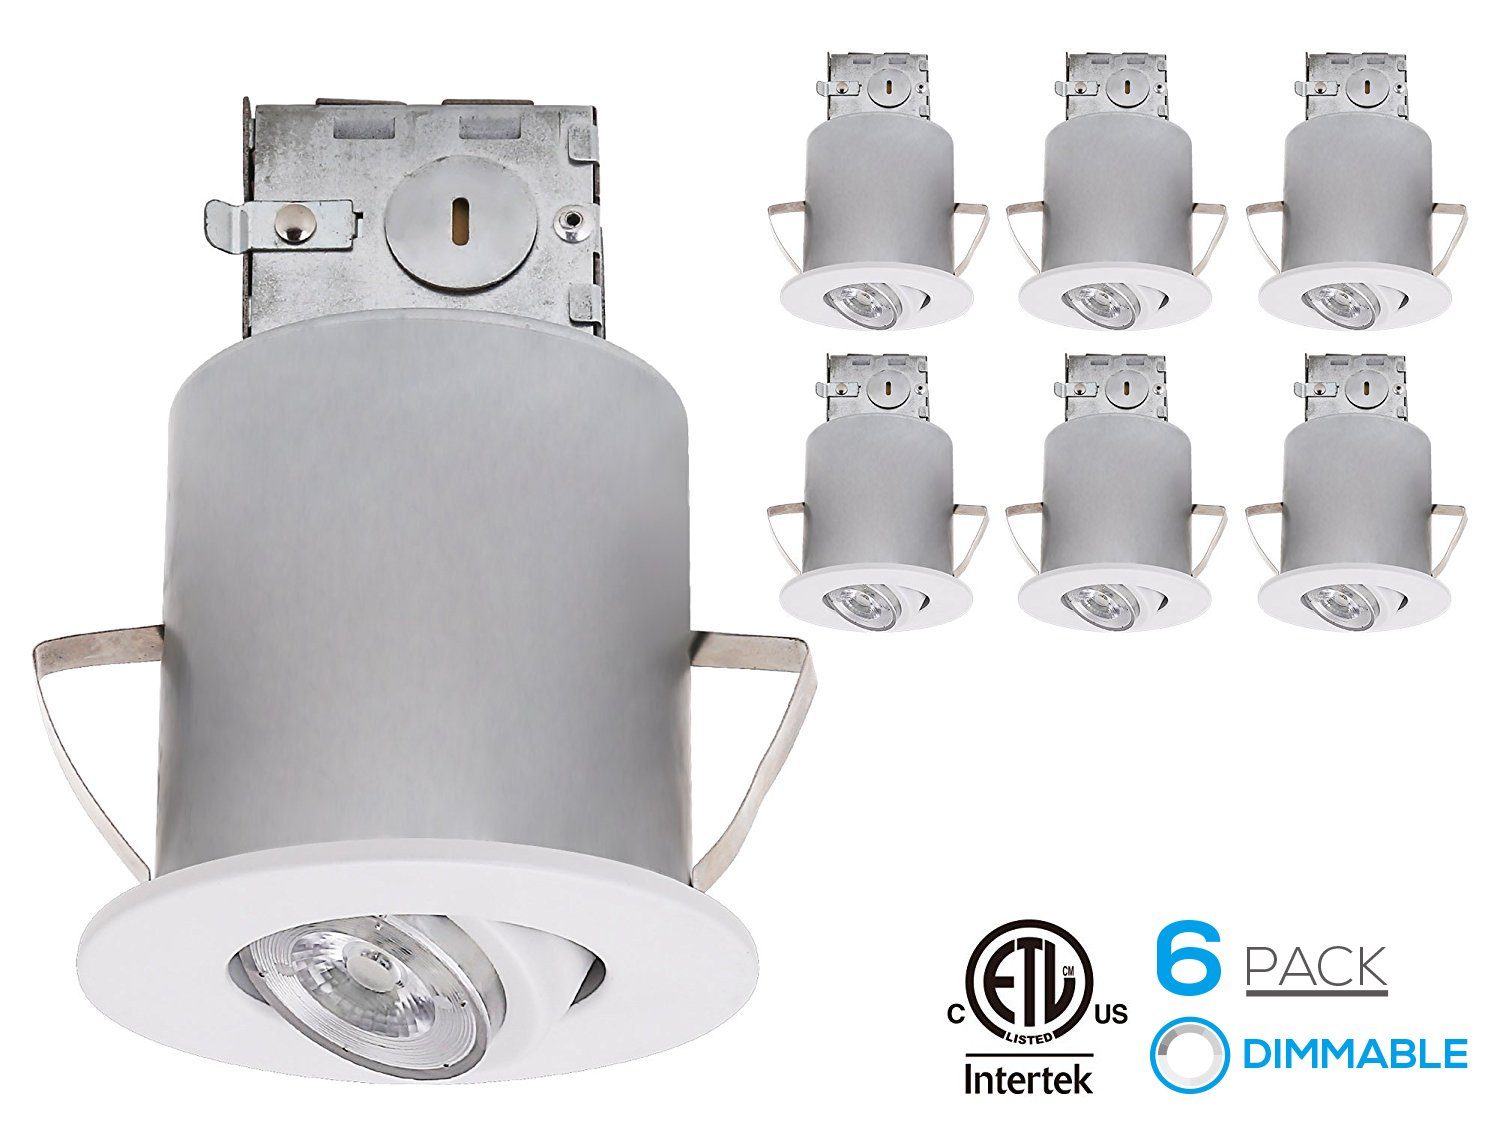 Recessed lighting kit 3 inch etl listed air tight ic housing recessed lighting kit 3 inch etl listed air tight ic housing white swivel trim led dimmable gu10 light bulb daylight rotatable spotlight fixture aloadofball